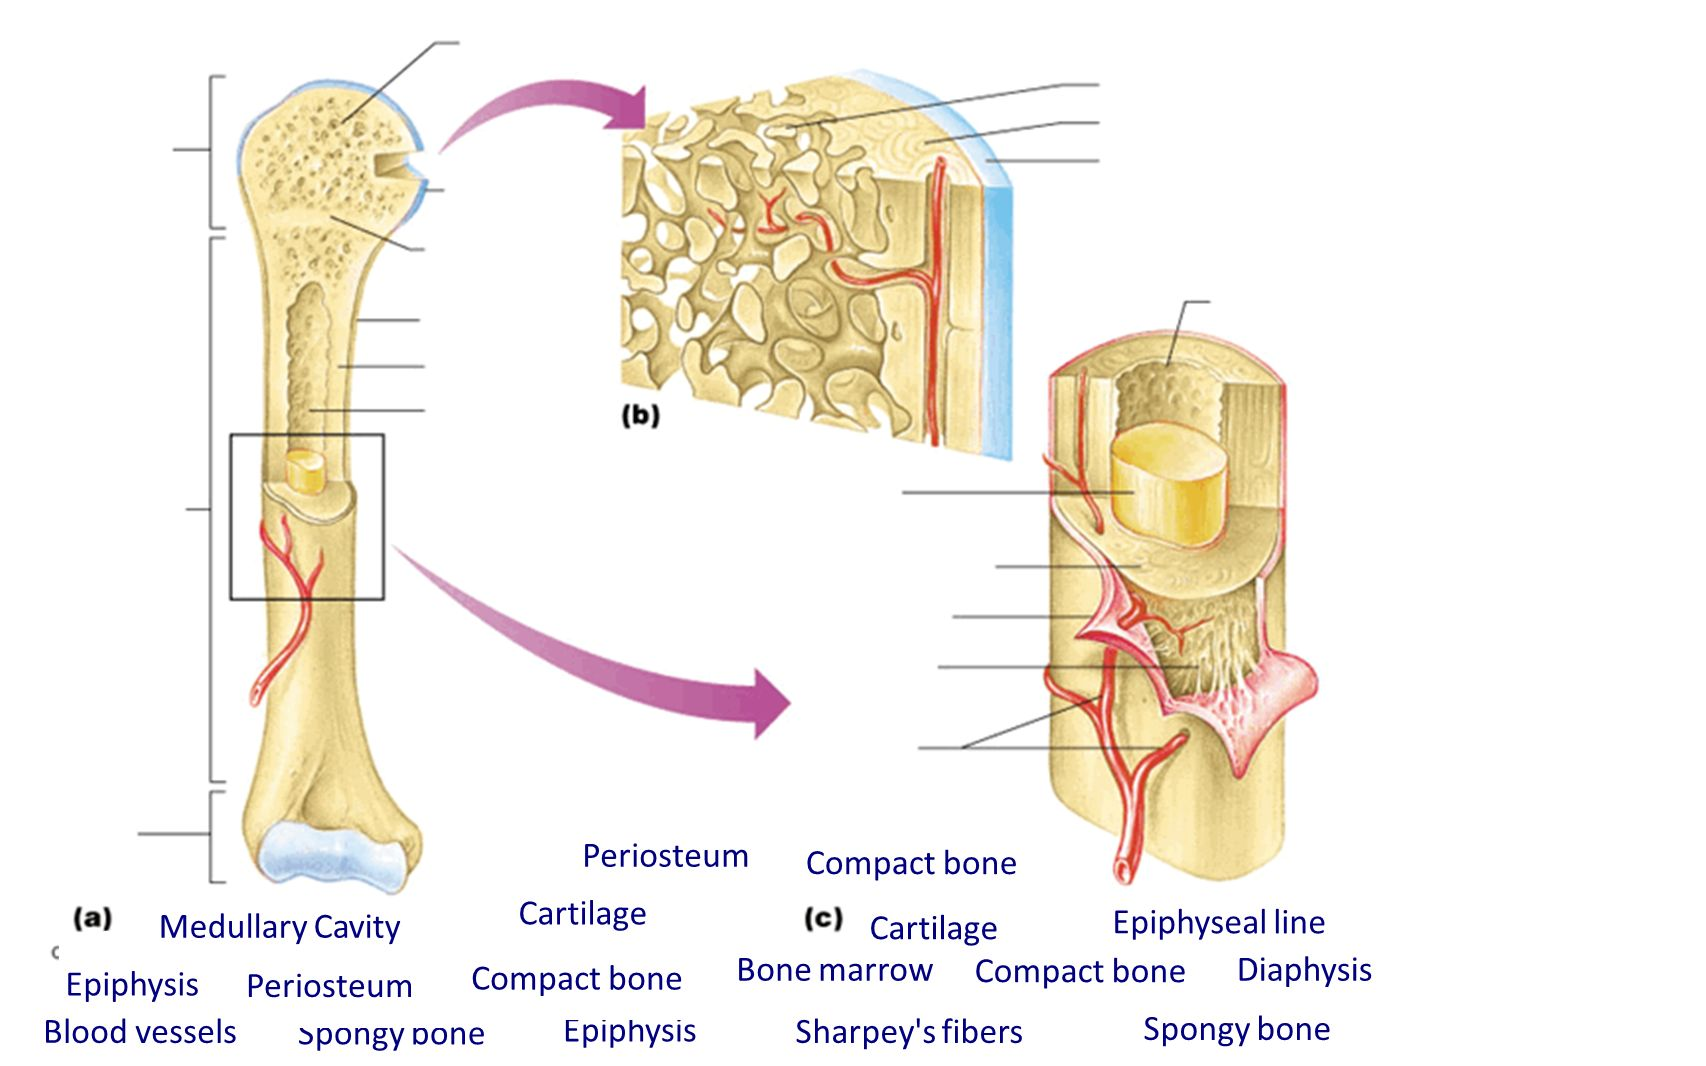 Periosteum And Compact Bone Diagram Diy Enthusiasts Wiring Diagrams